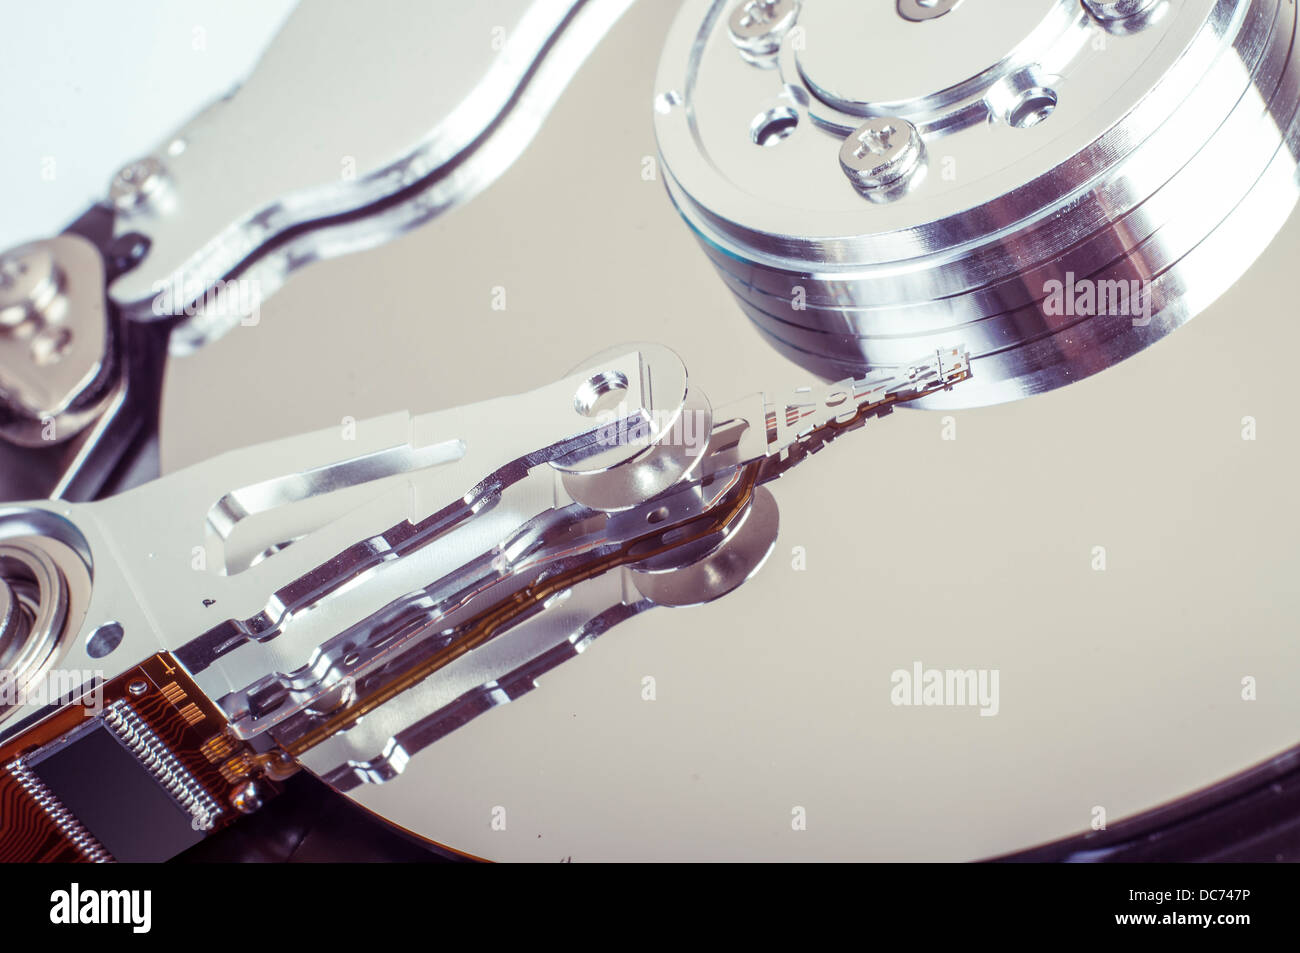 An image of hard drive close up - Stock Image